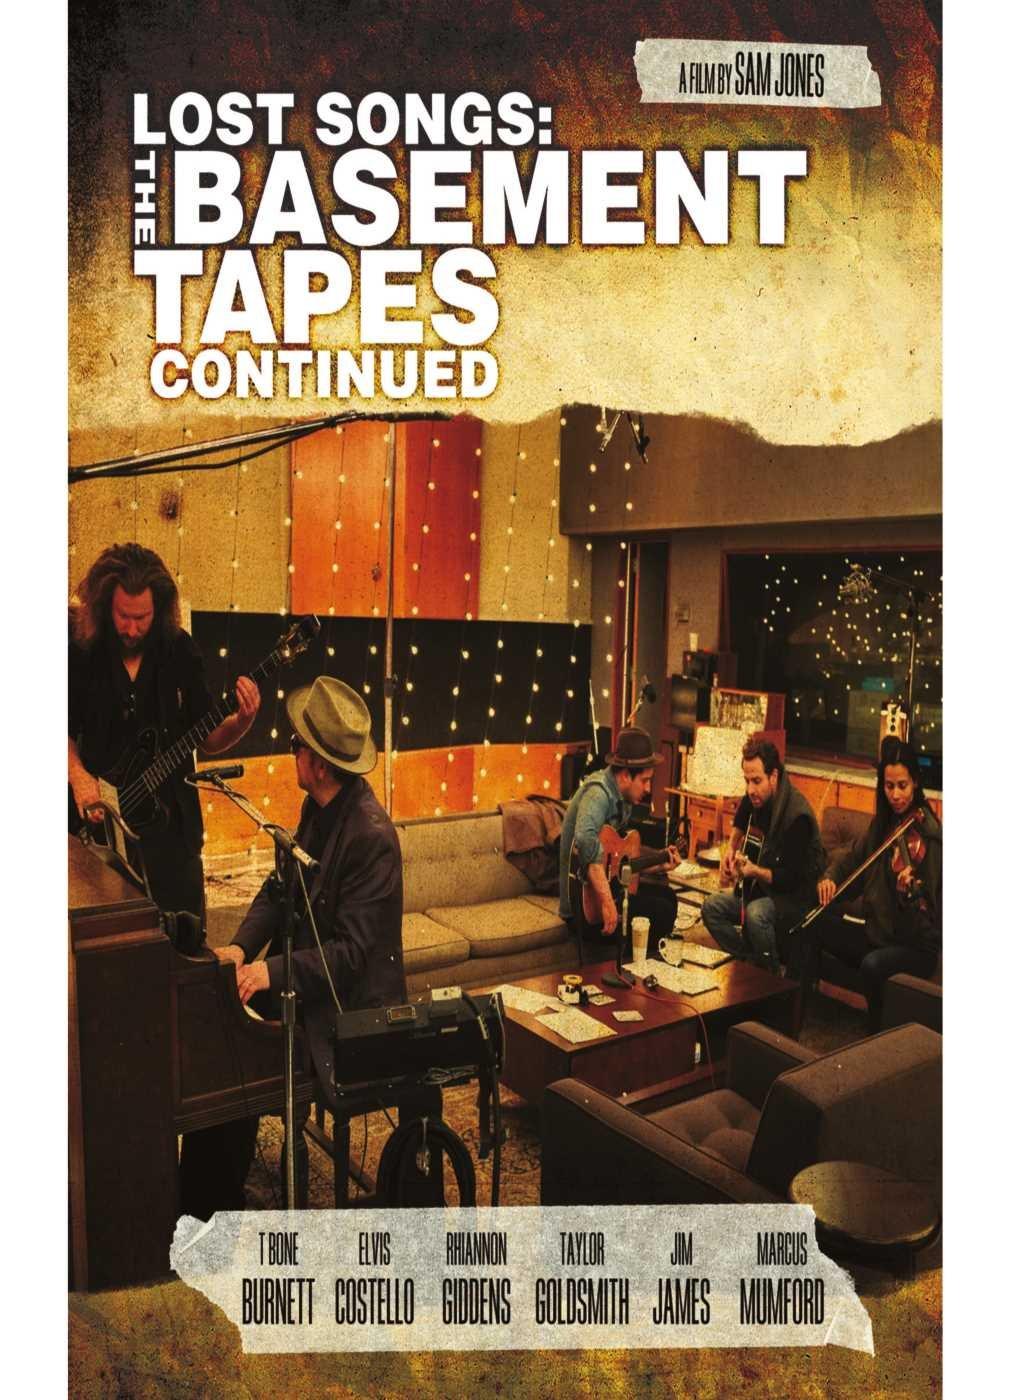 LOST SONGS THE BASEMENT TAPES (DVD)